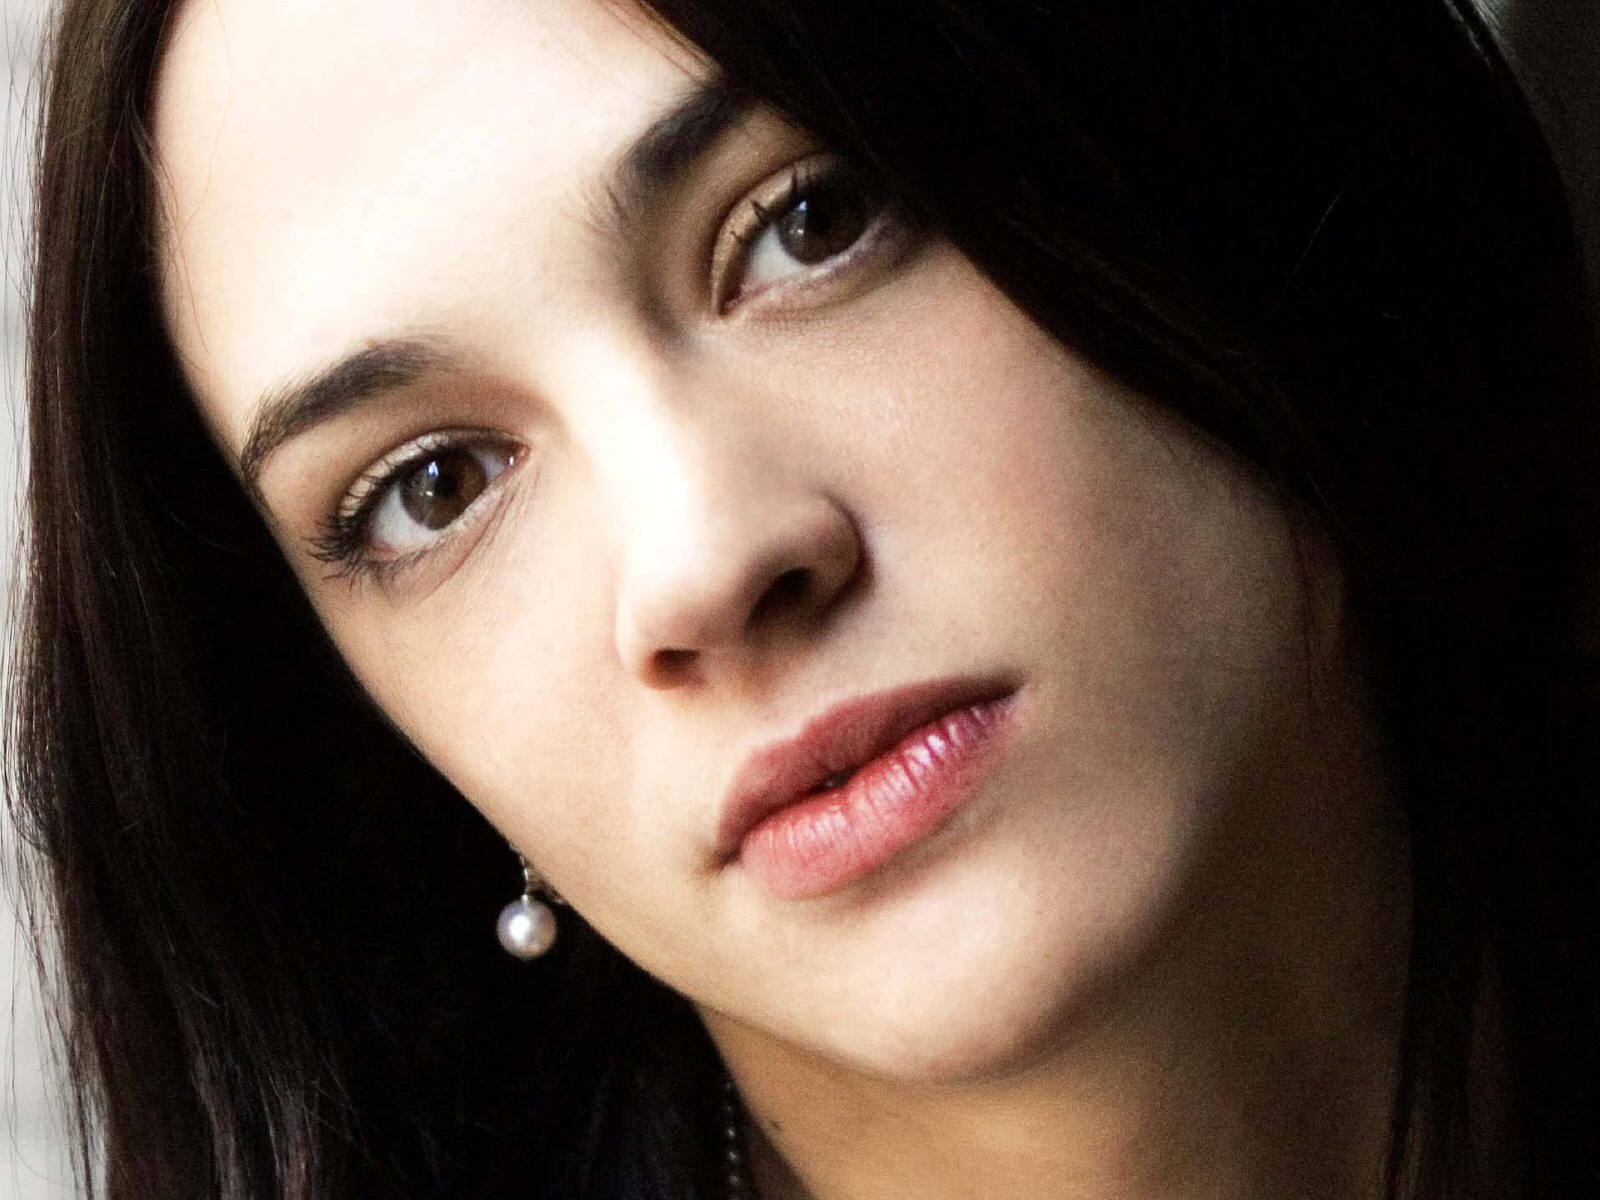 1600x1200 - Asia Argento Wallpapers 32